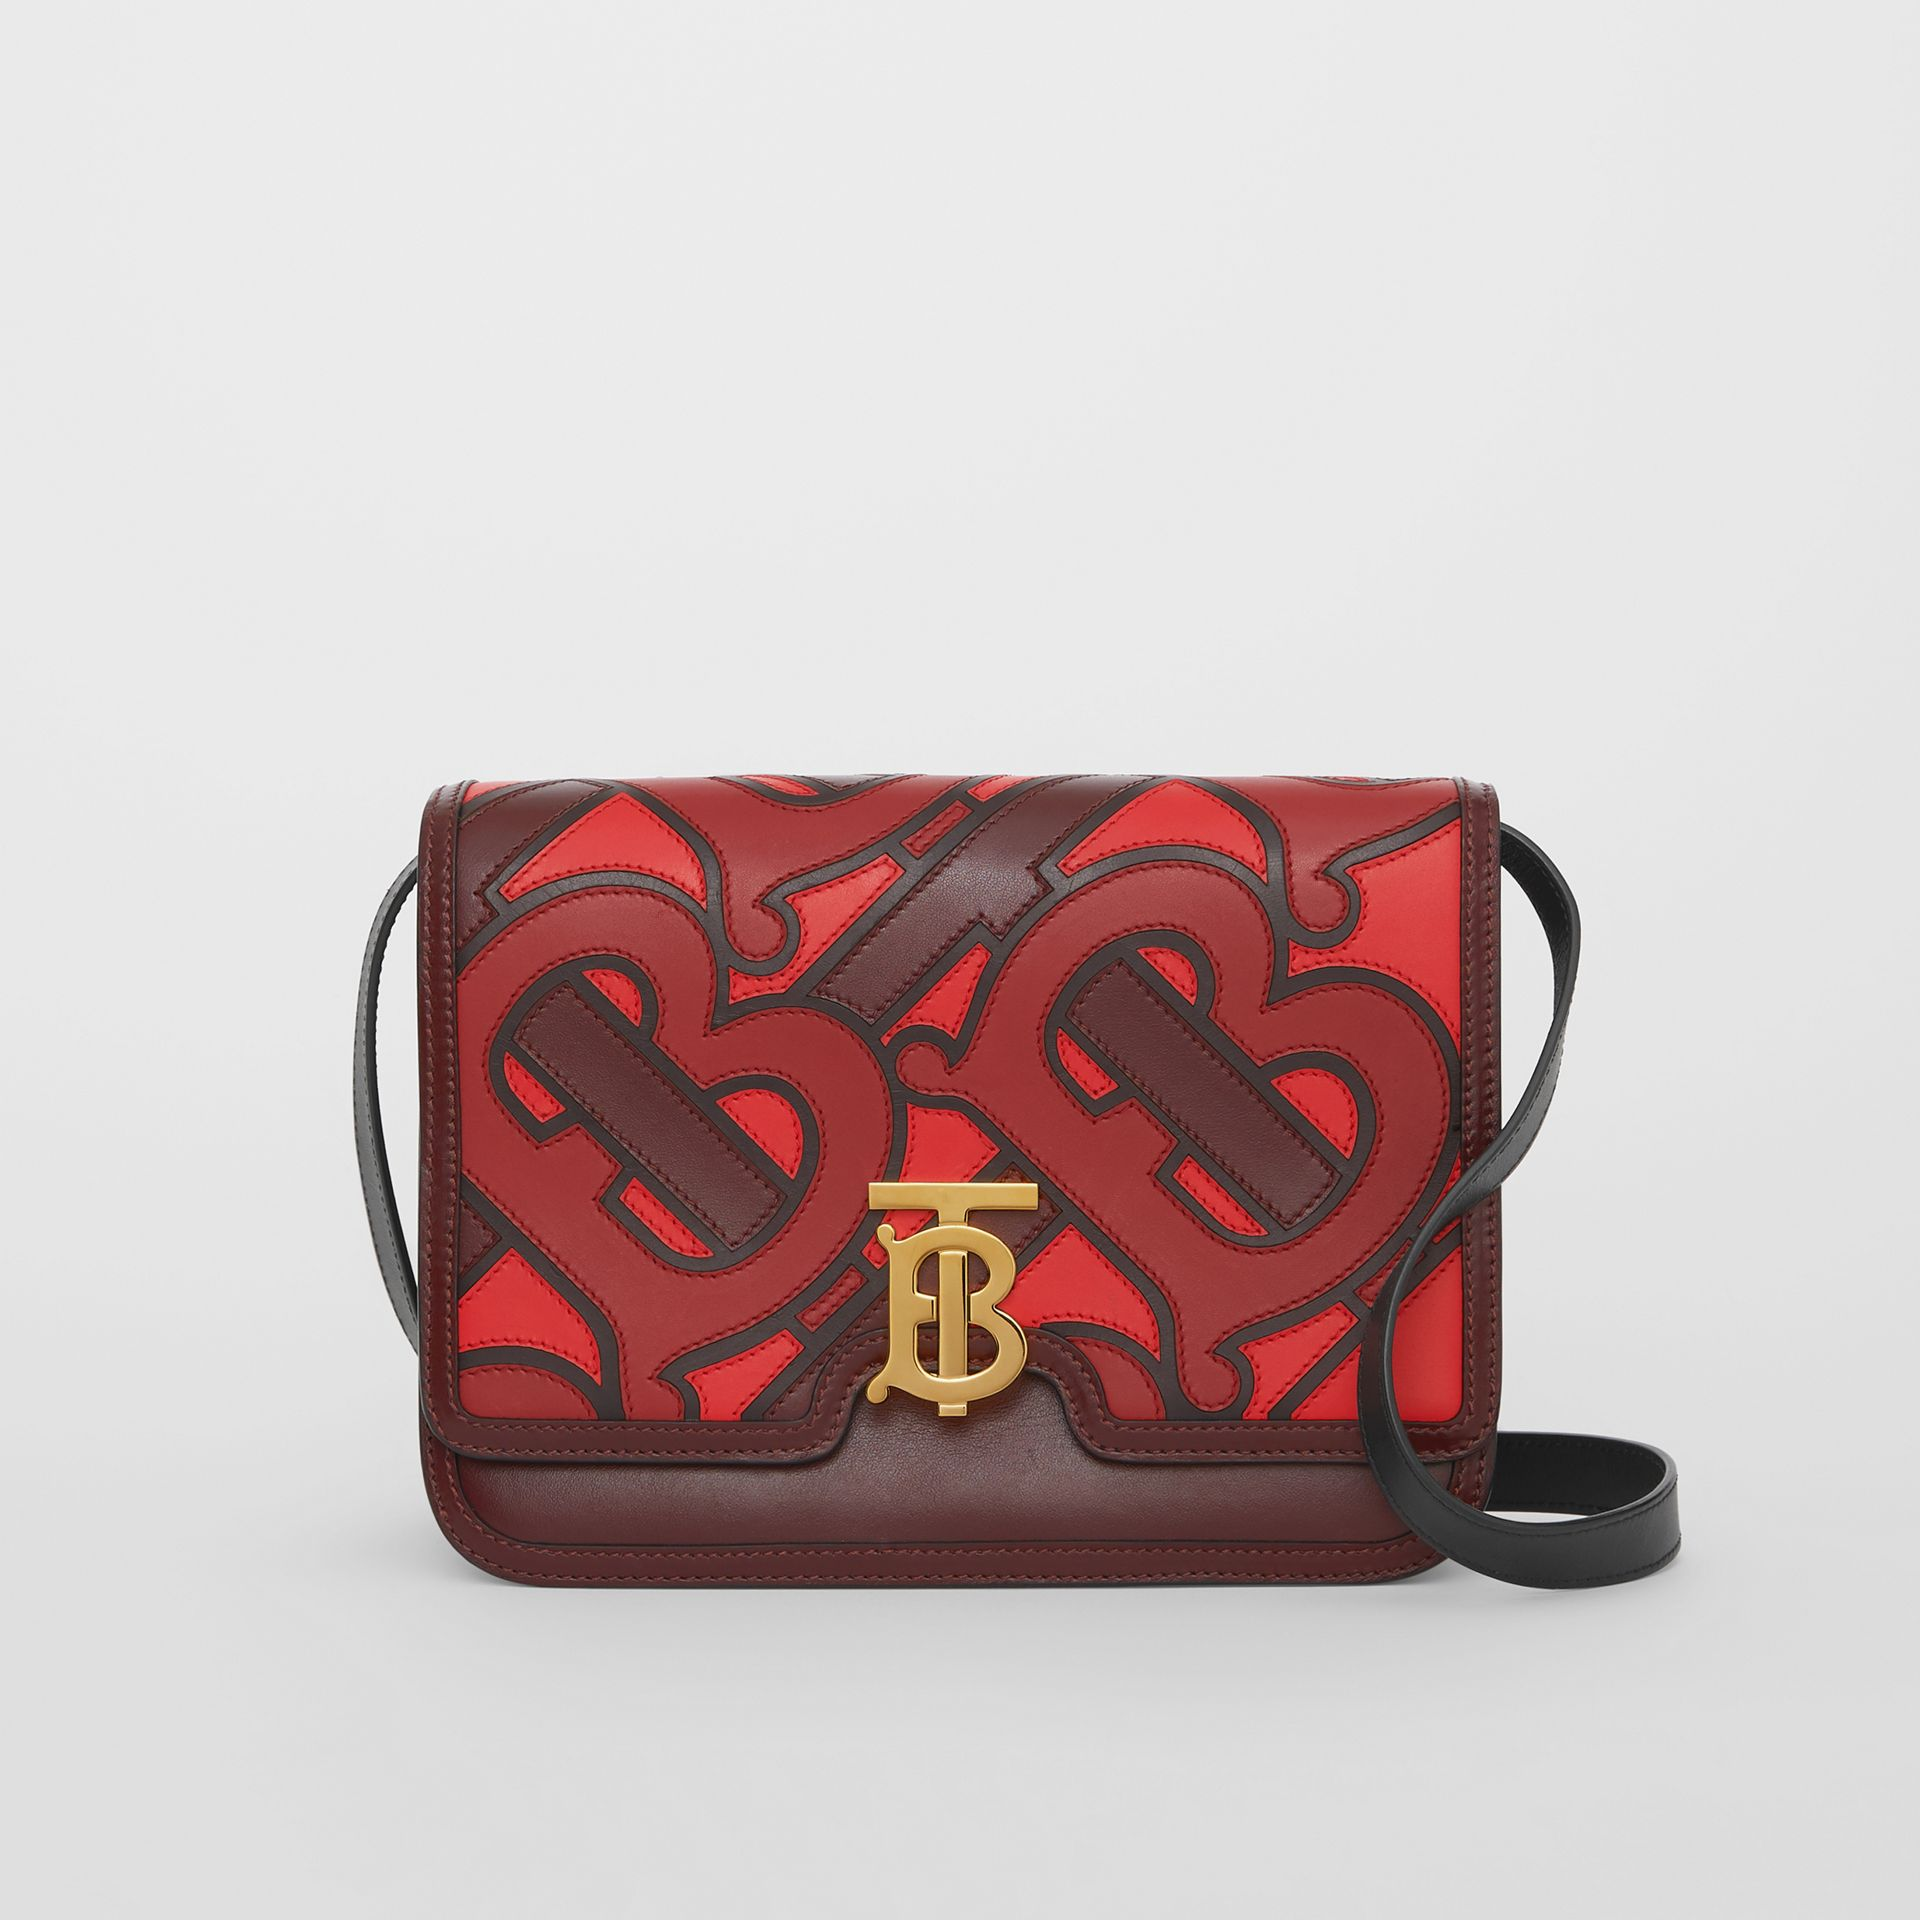 Medium Monogram Appliqué Leather TB Bag in Oxblood - Women | Burberry Singapore - gallery image 0